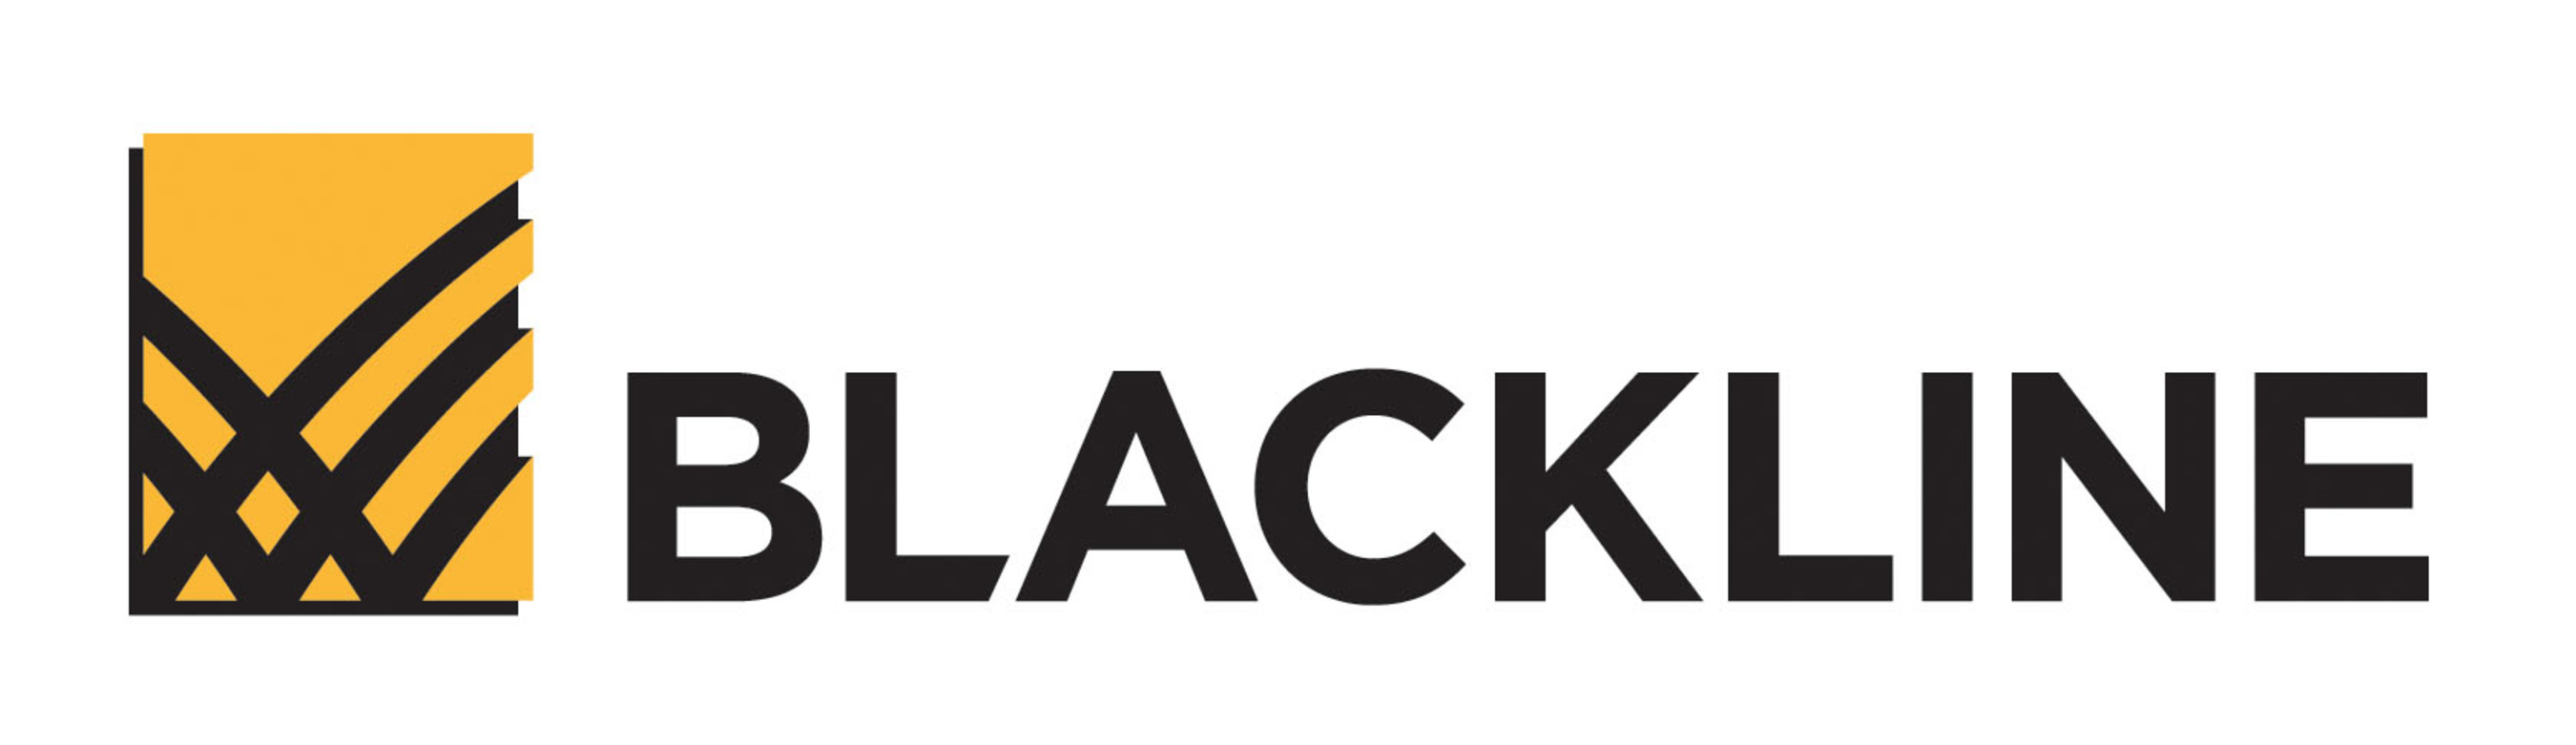 BlackLine Announces Pricing of Initial Public Offering